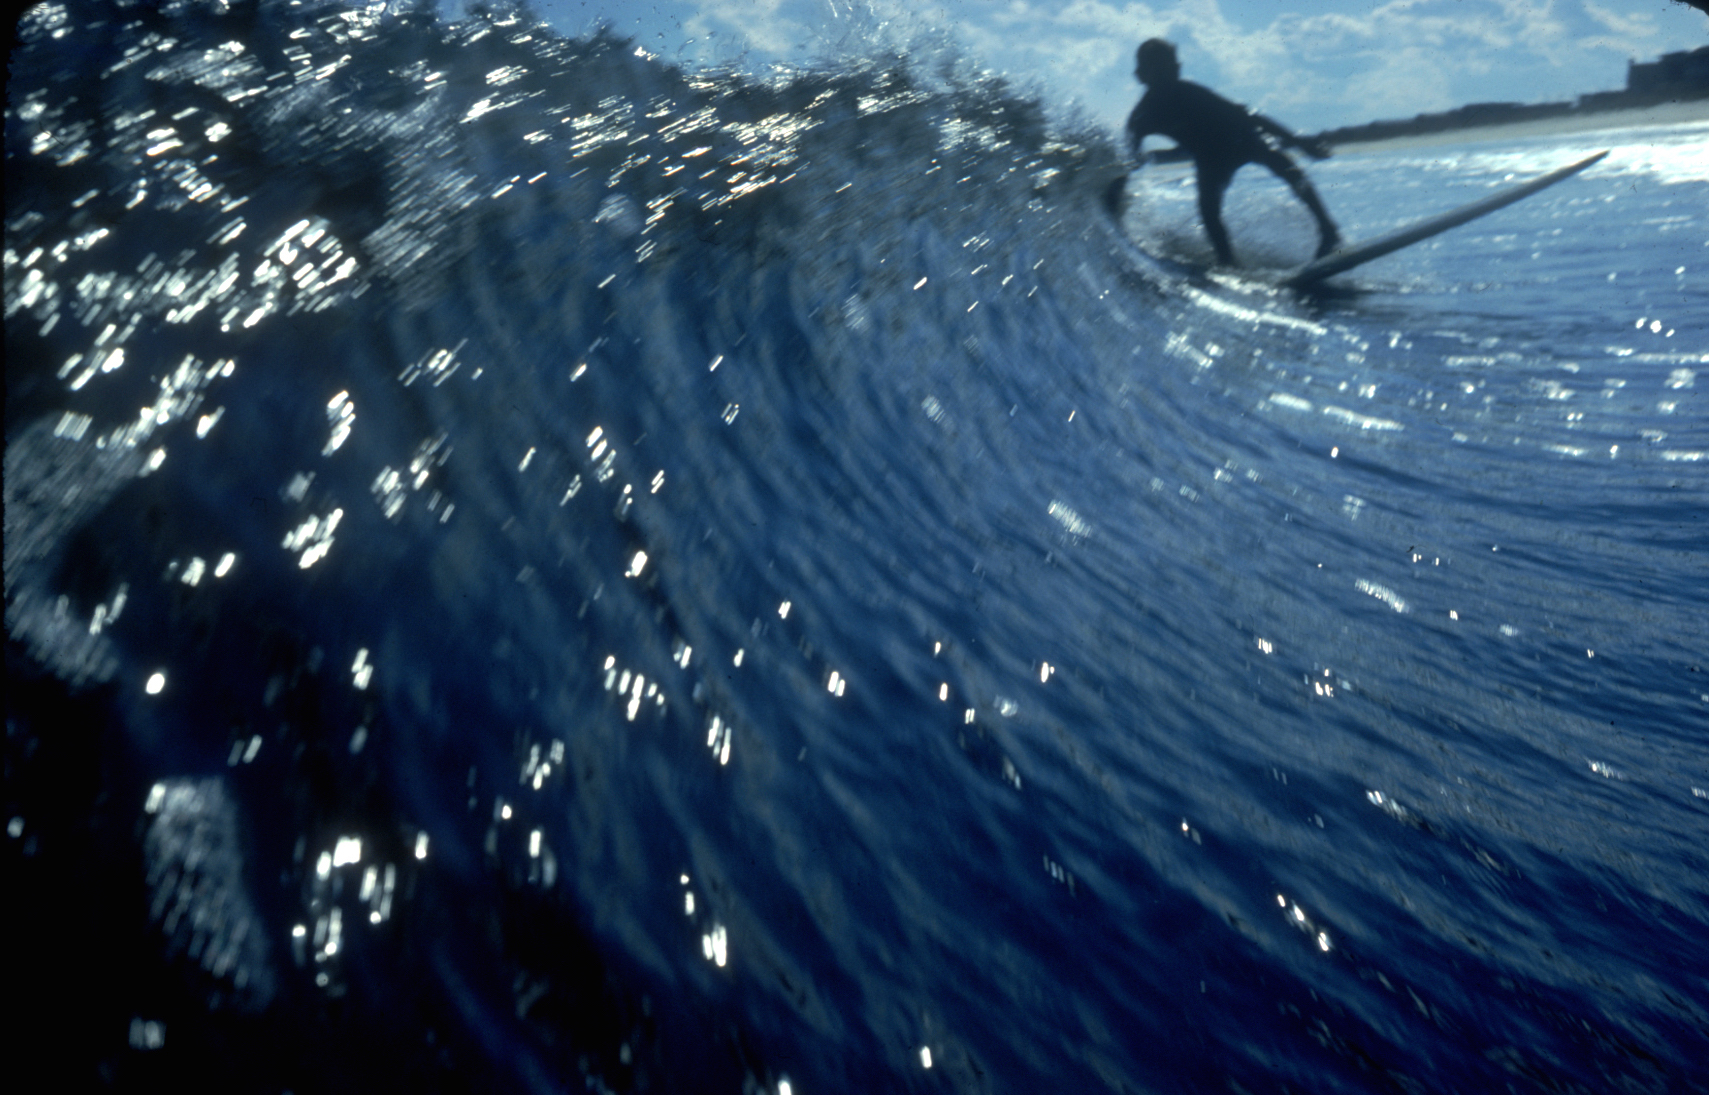 Surfwise Directed by Doug Pray  93 minutes | Documentary